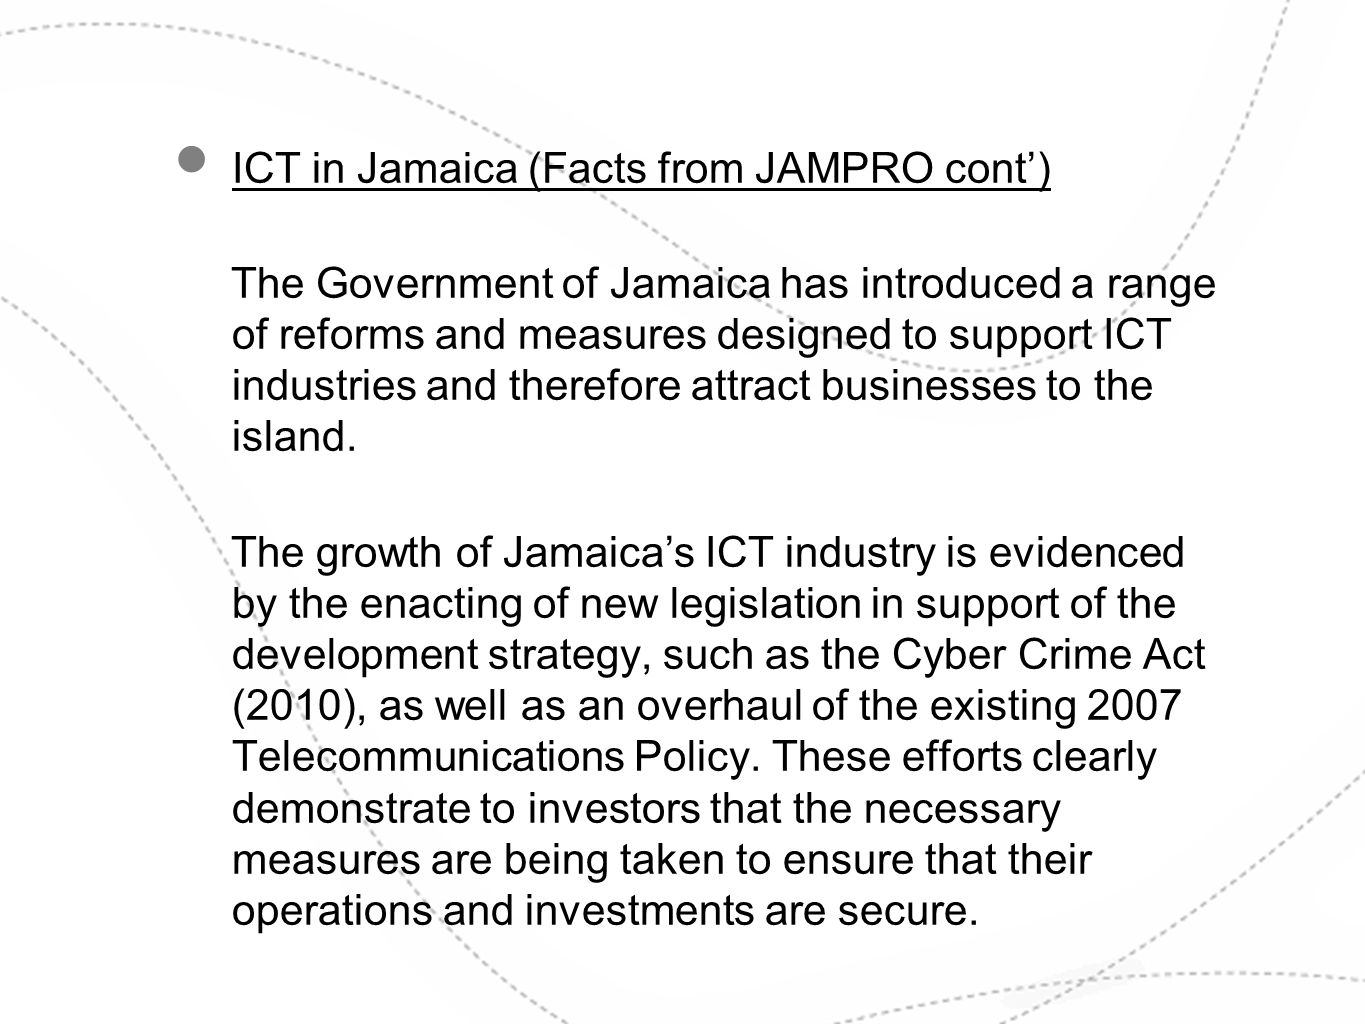 ICT in Jamaica (Facts from JAMPRO cont) The Government of Jamaica has introduced a range of reforms and measures designed to support ICT industries an